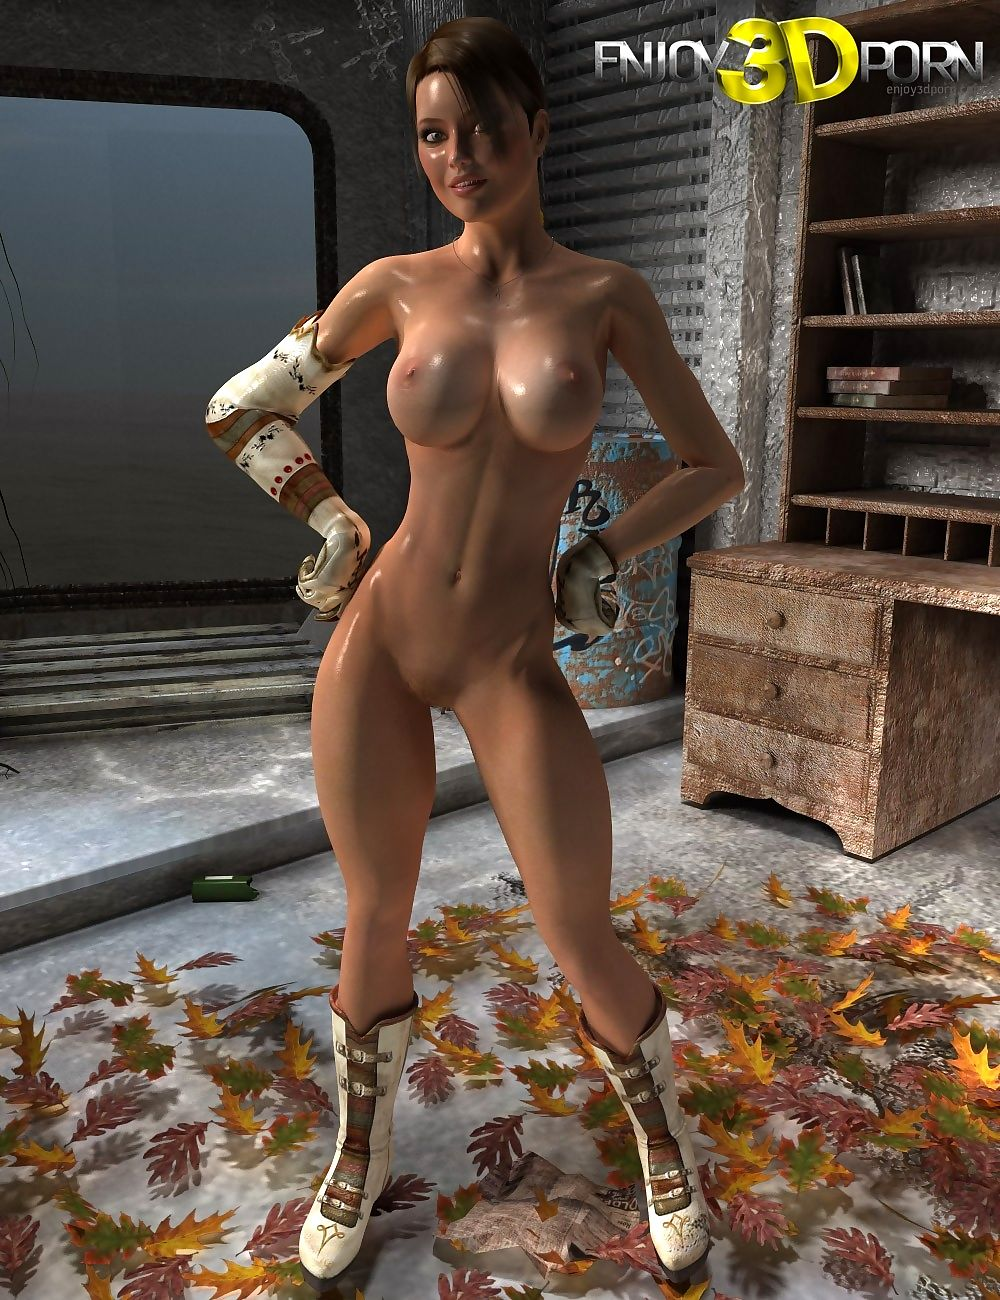 She strips together with their way setting up is extensively be expeditious for this Terra - loyalty 531